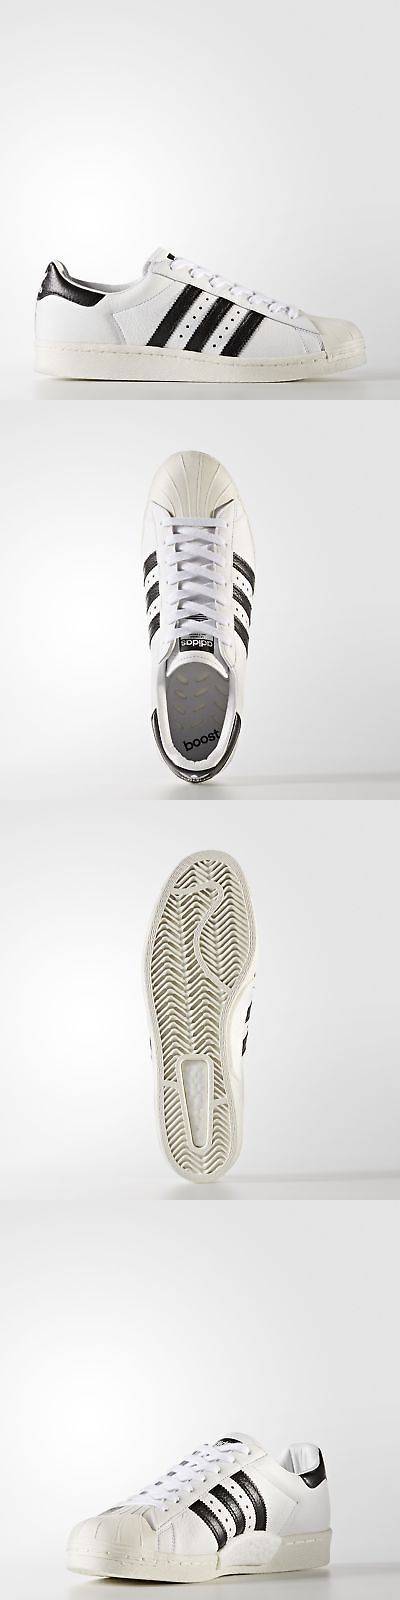 Men Shoes: Adidas Superstar Boost Shoes Men S White -> BUY IT NOW ONLY: $84 on eBay!